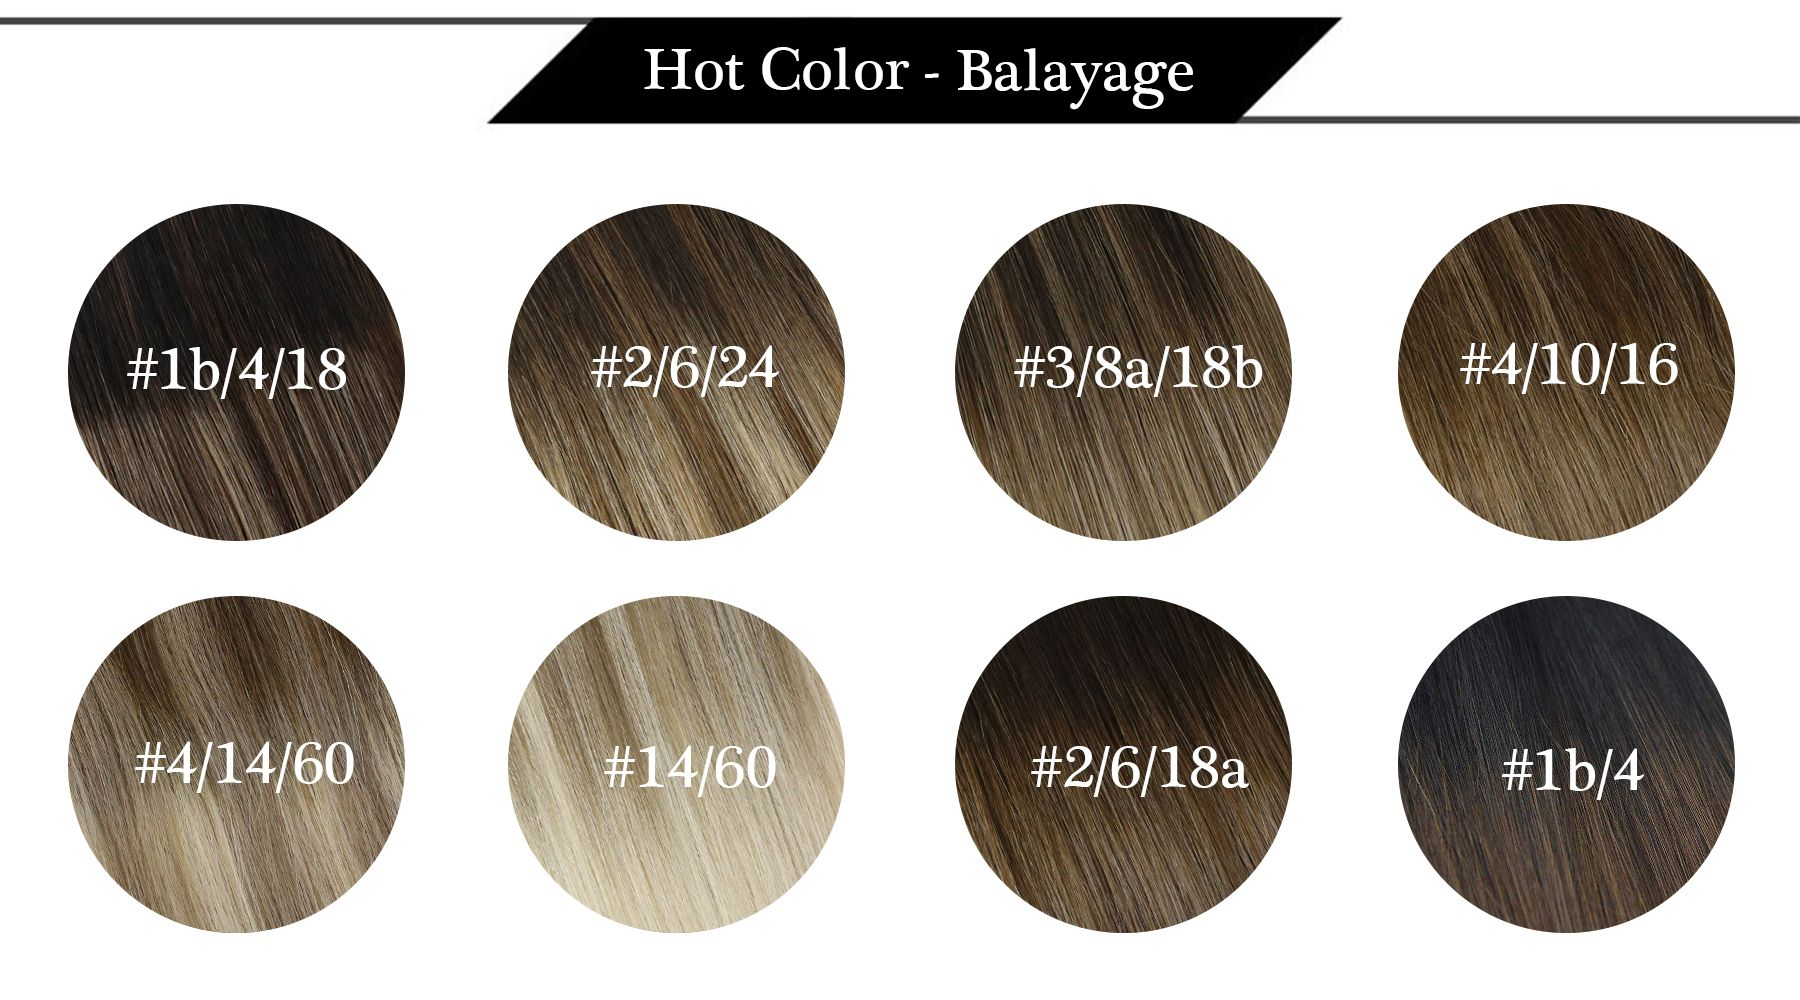 Tape in Medium Brown Balayage Ombre Blonde Human Hair Extensions